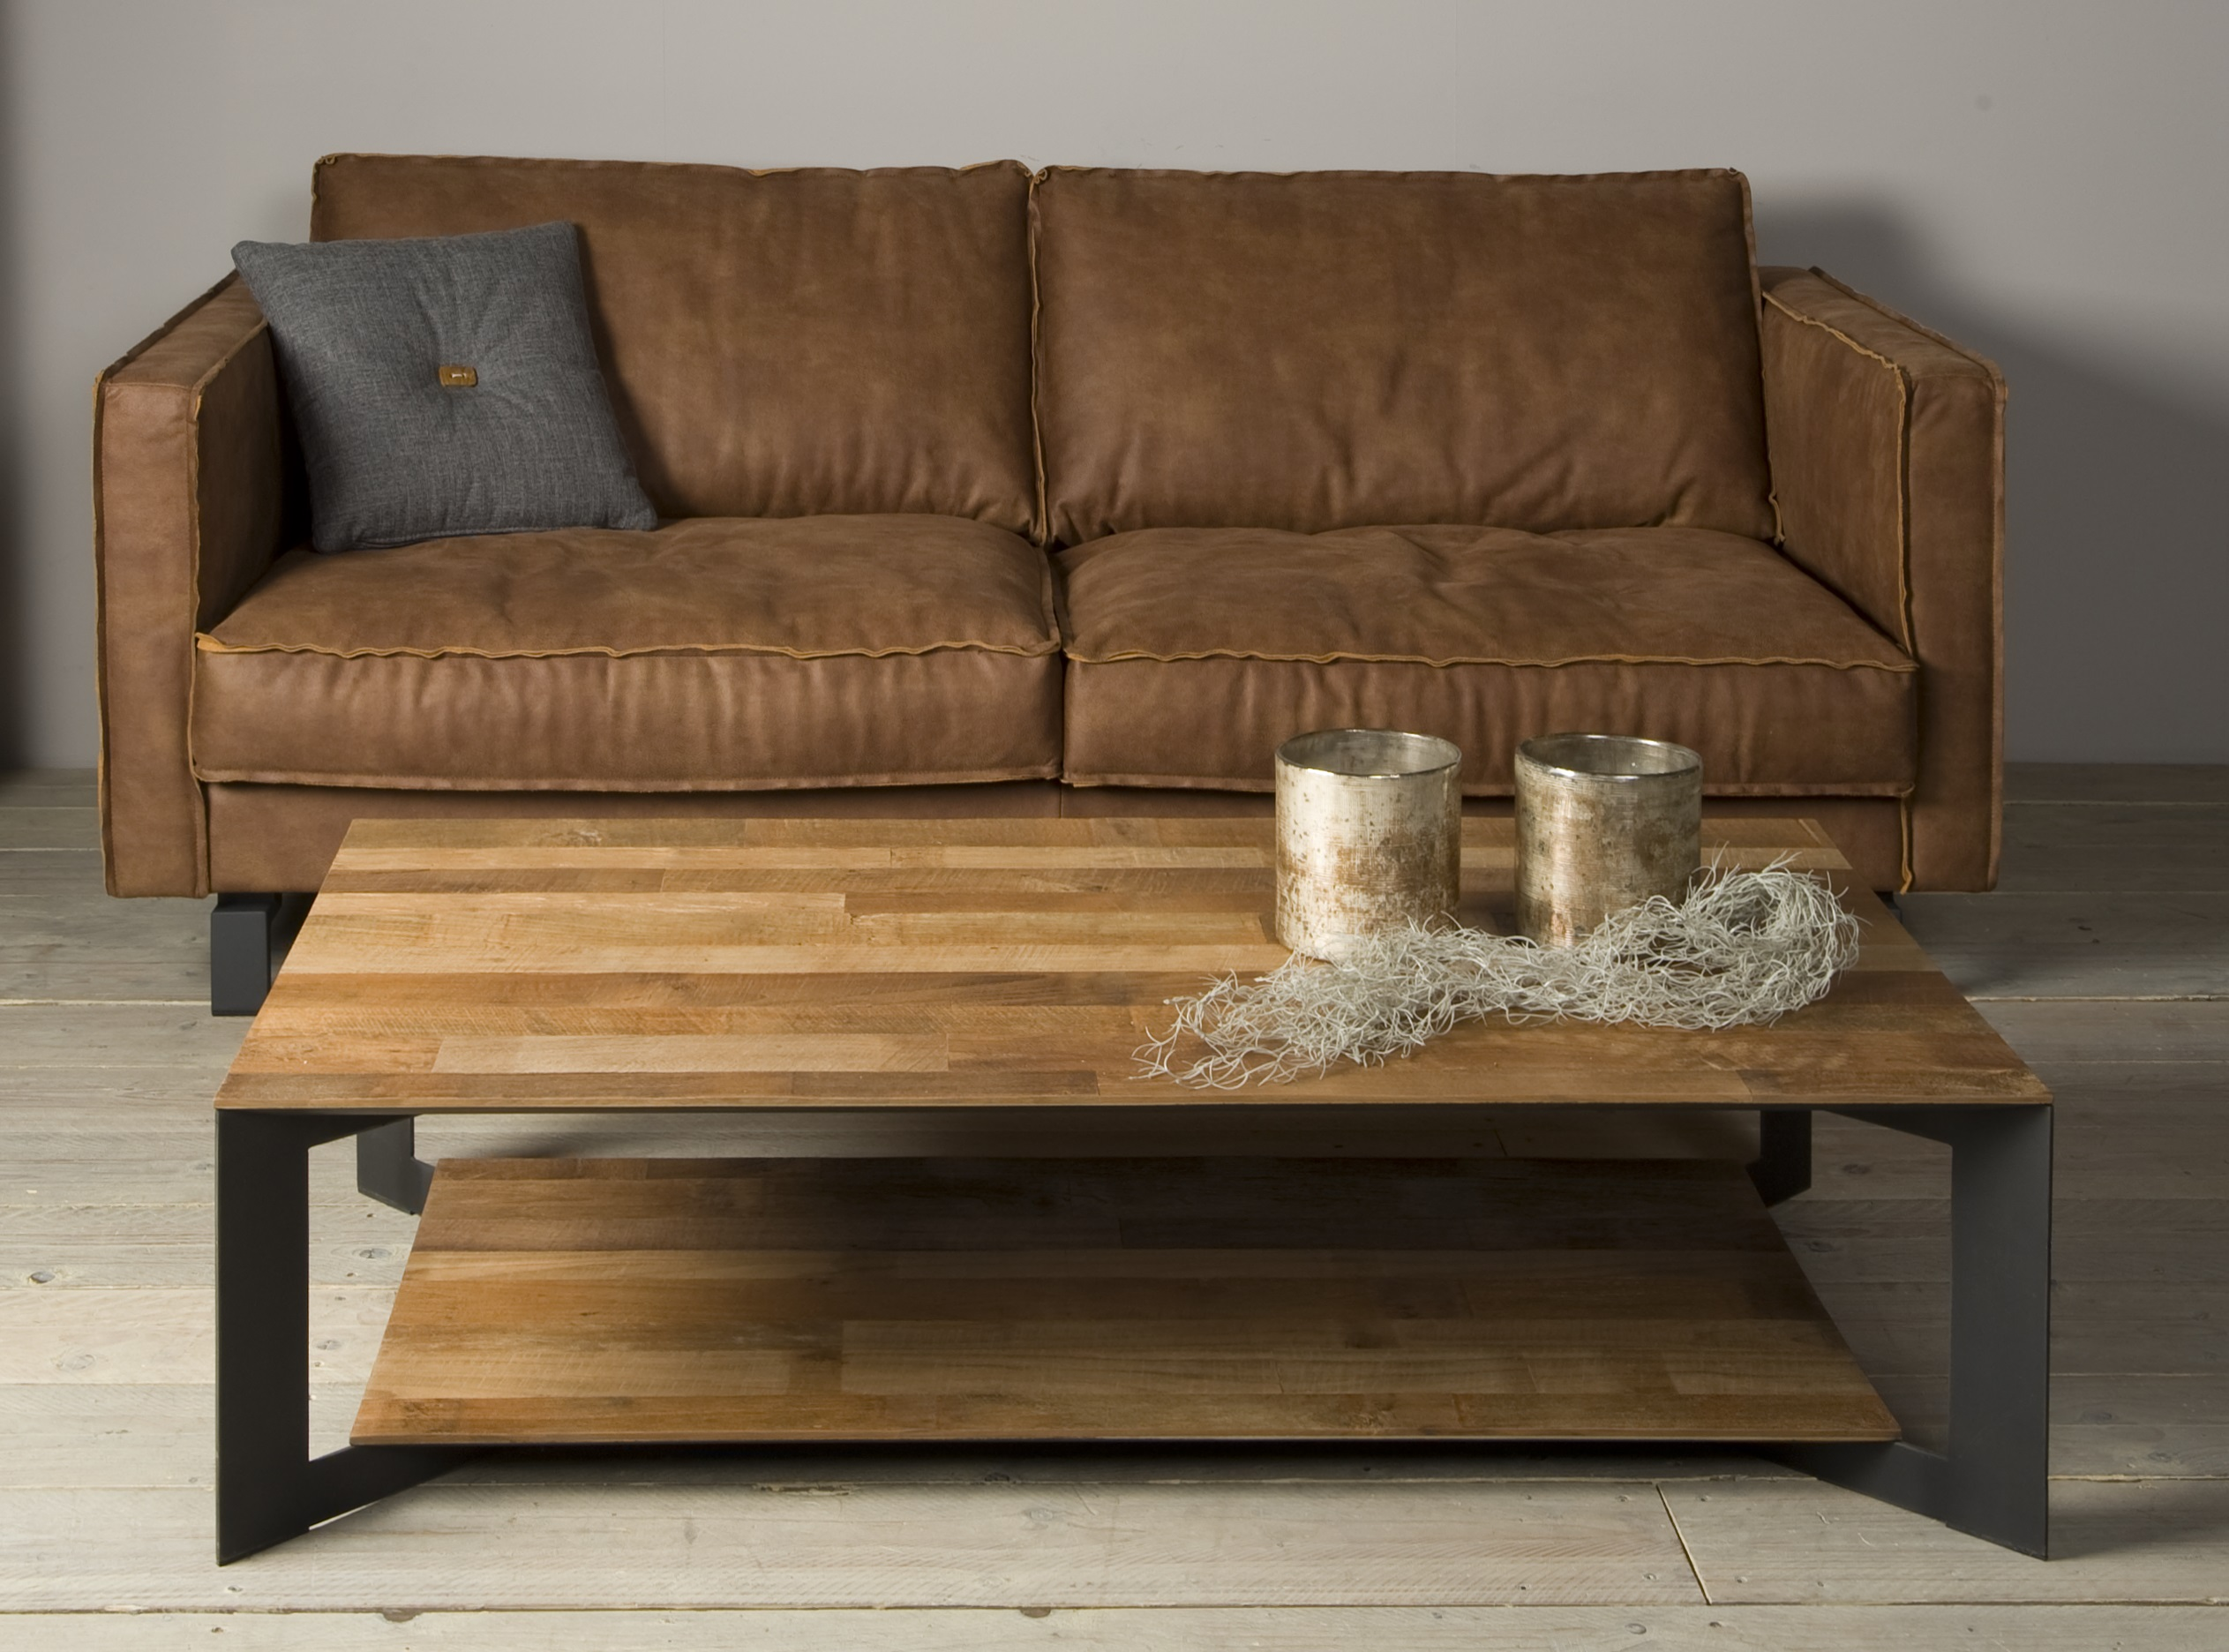 Aberdeen Coffee Table Staal Teakhout 135 Cm